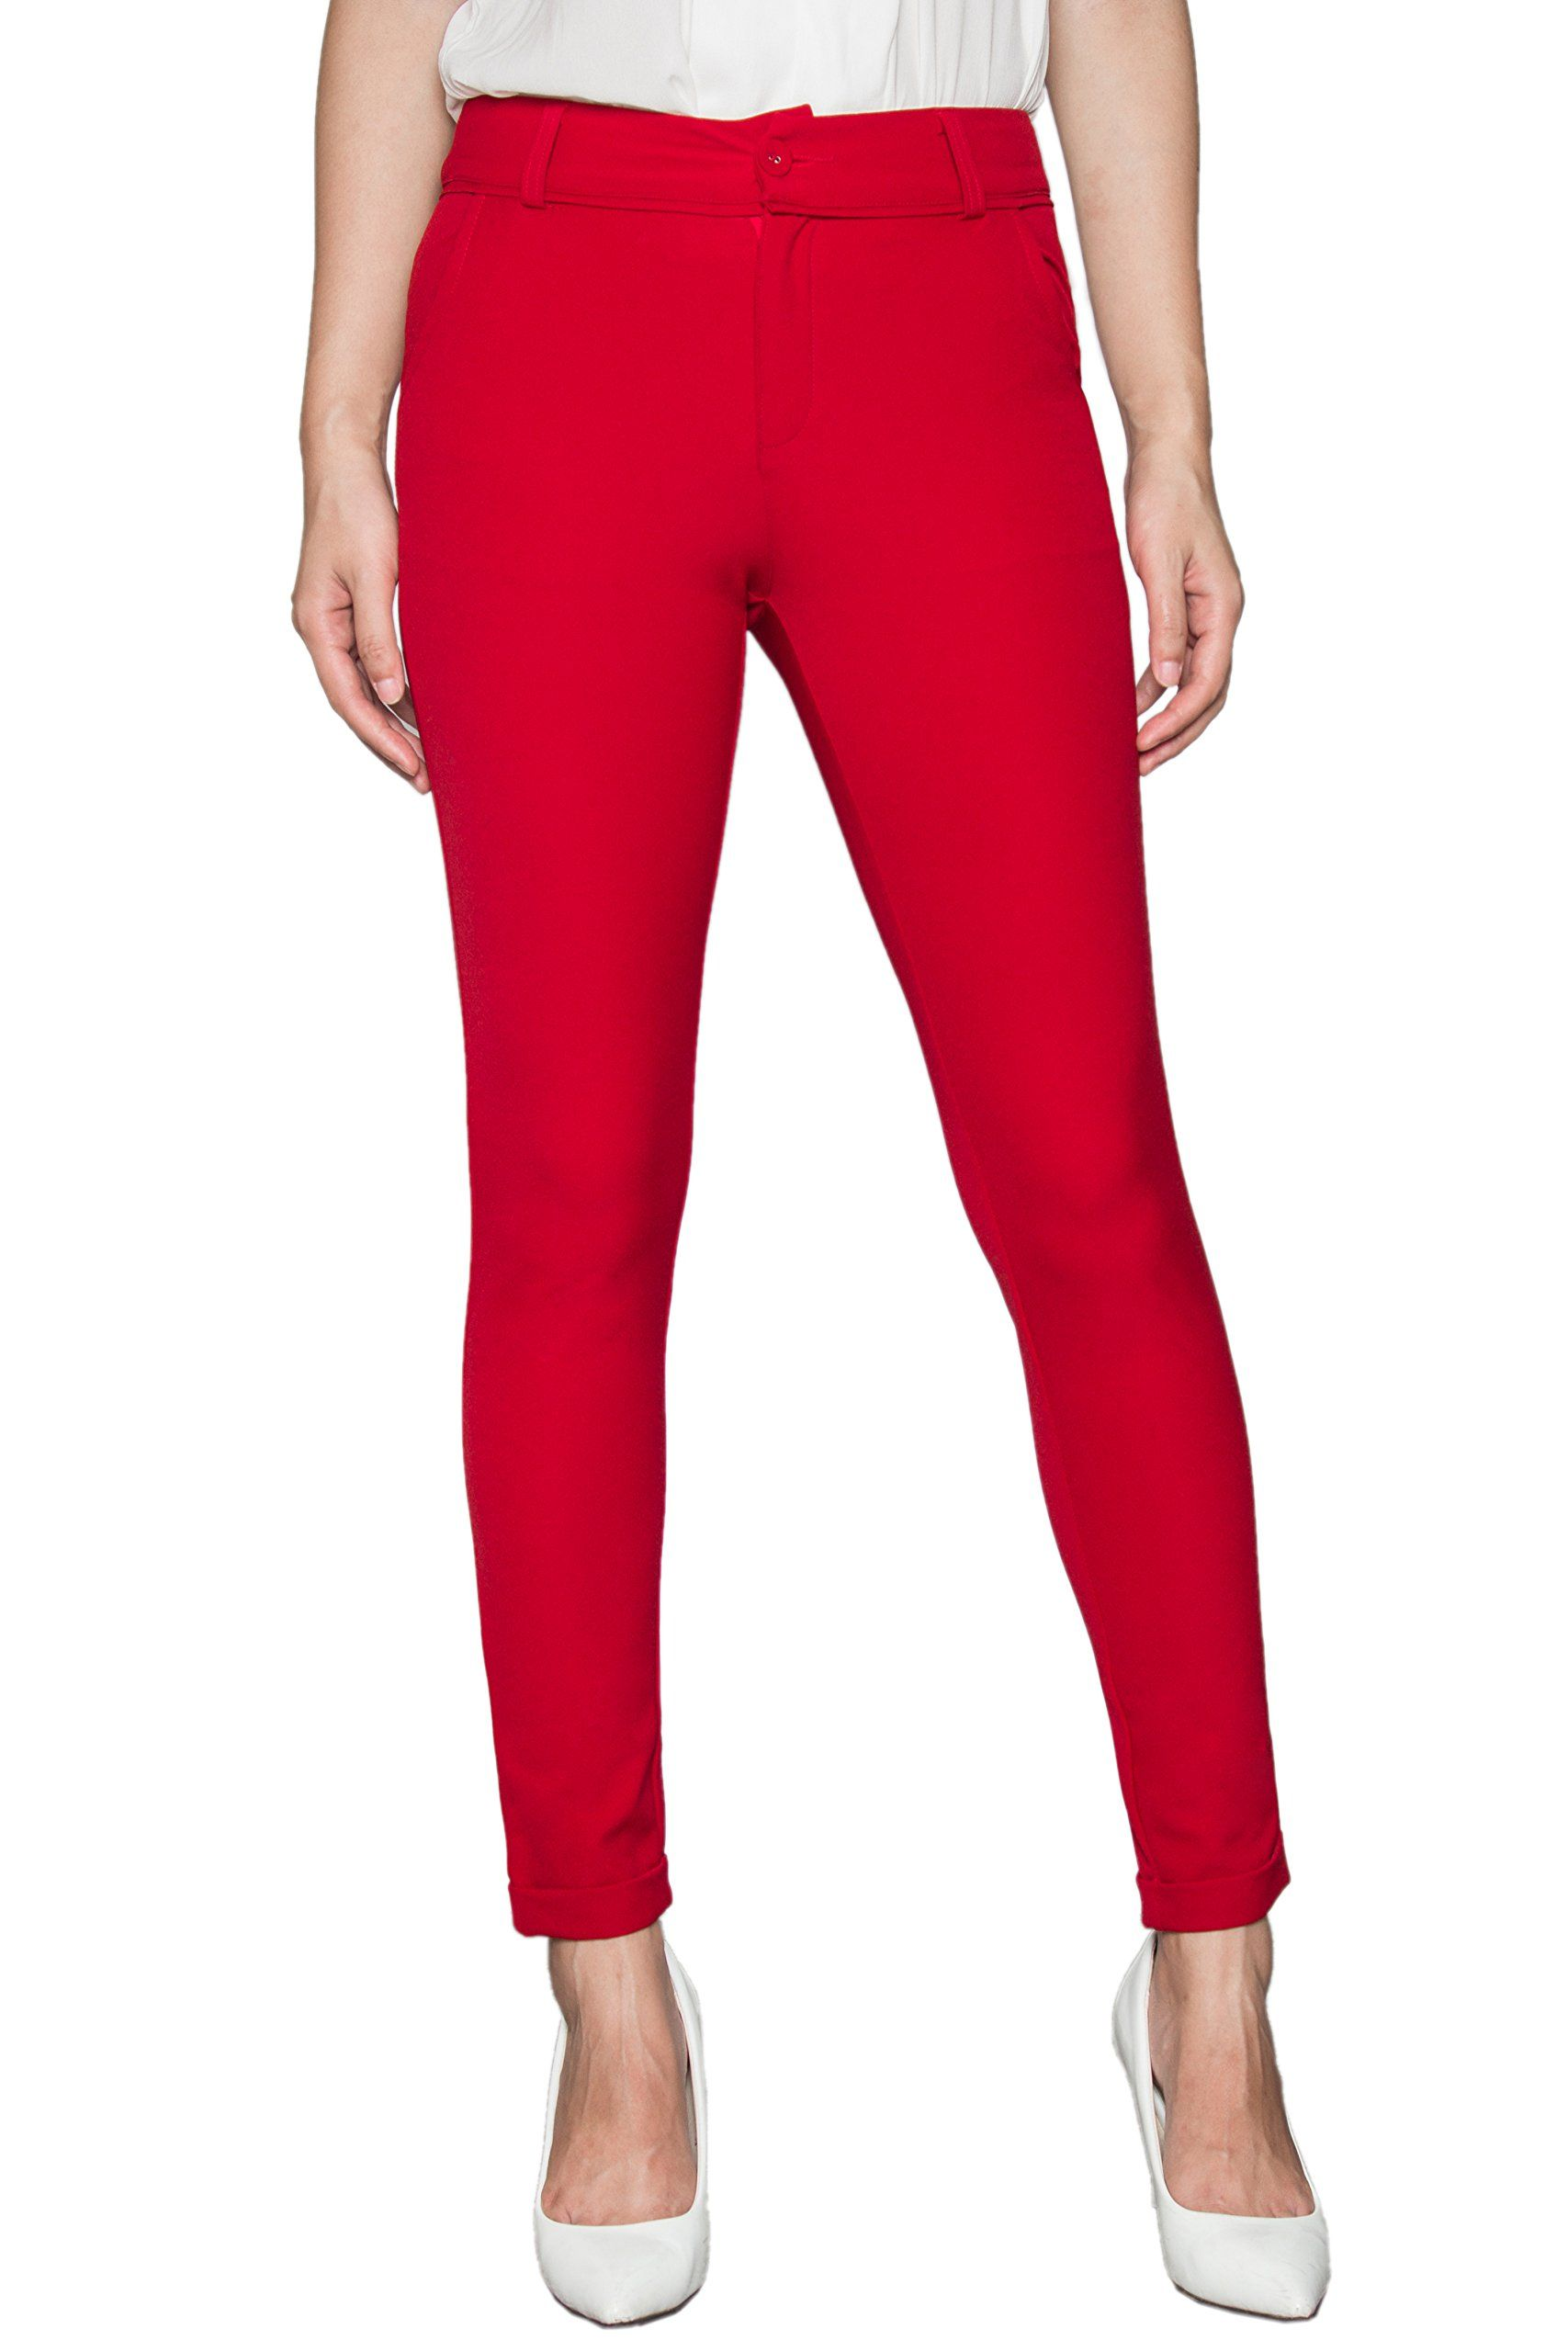 Women's Stretch Dress Pants Slim Fit Ankle (M, Red). Recommended ...